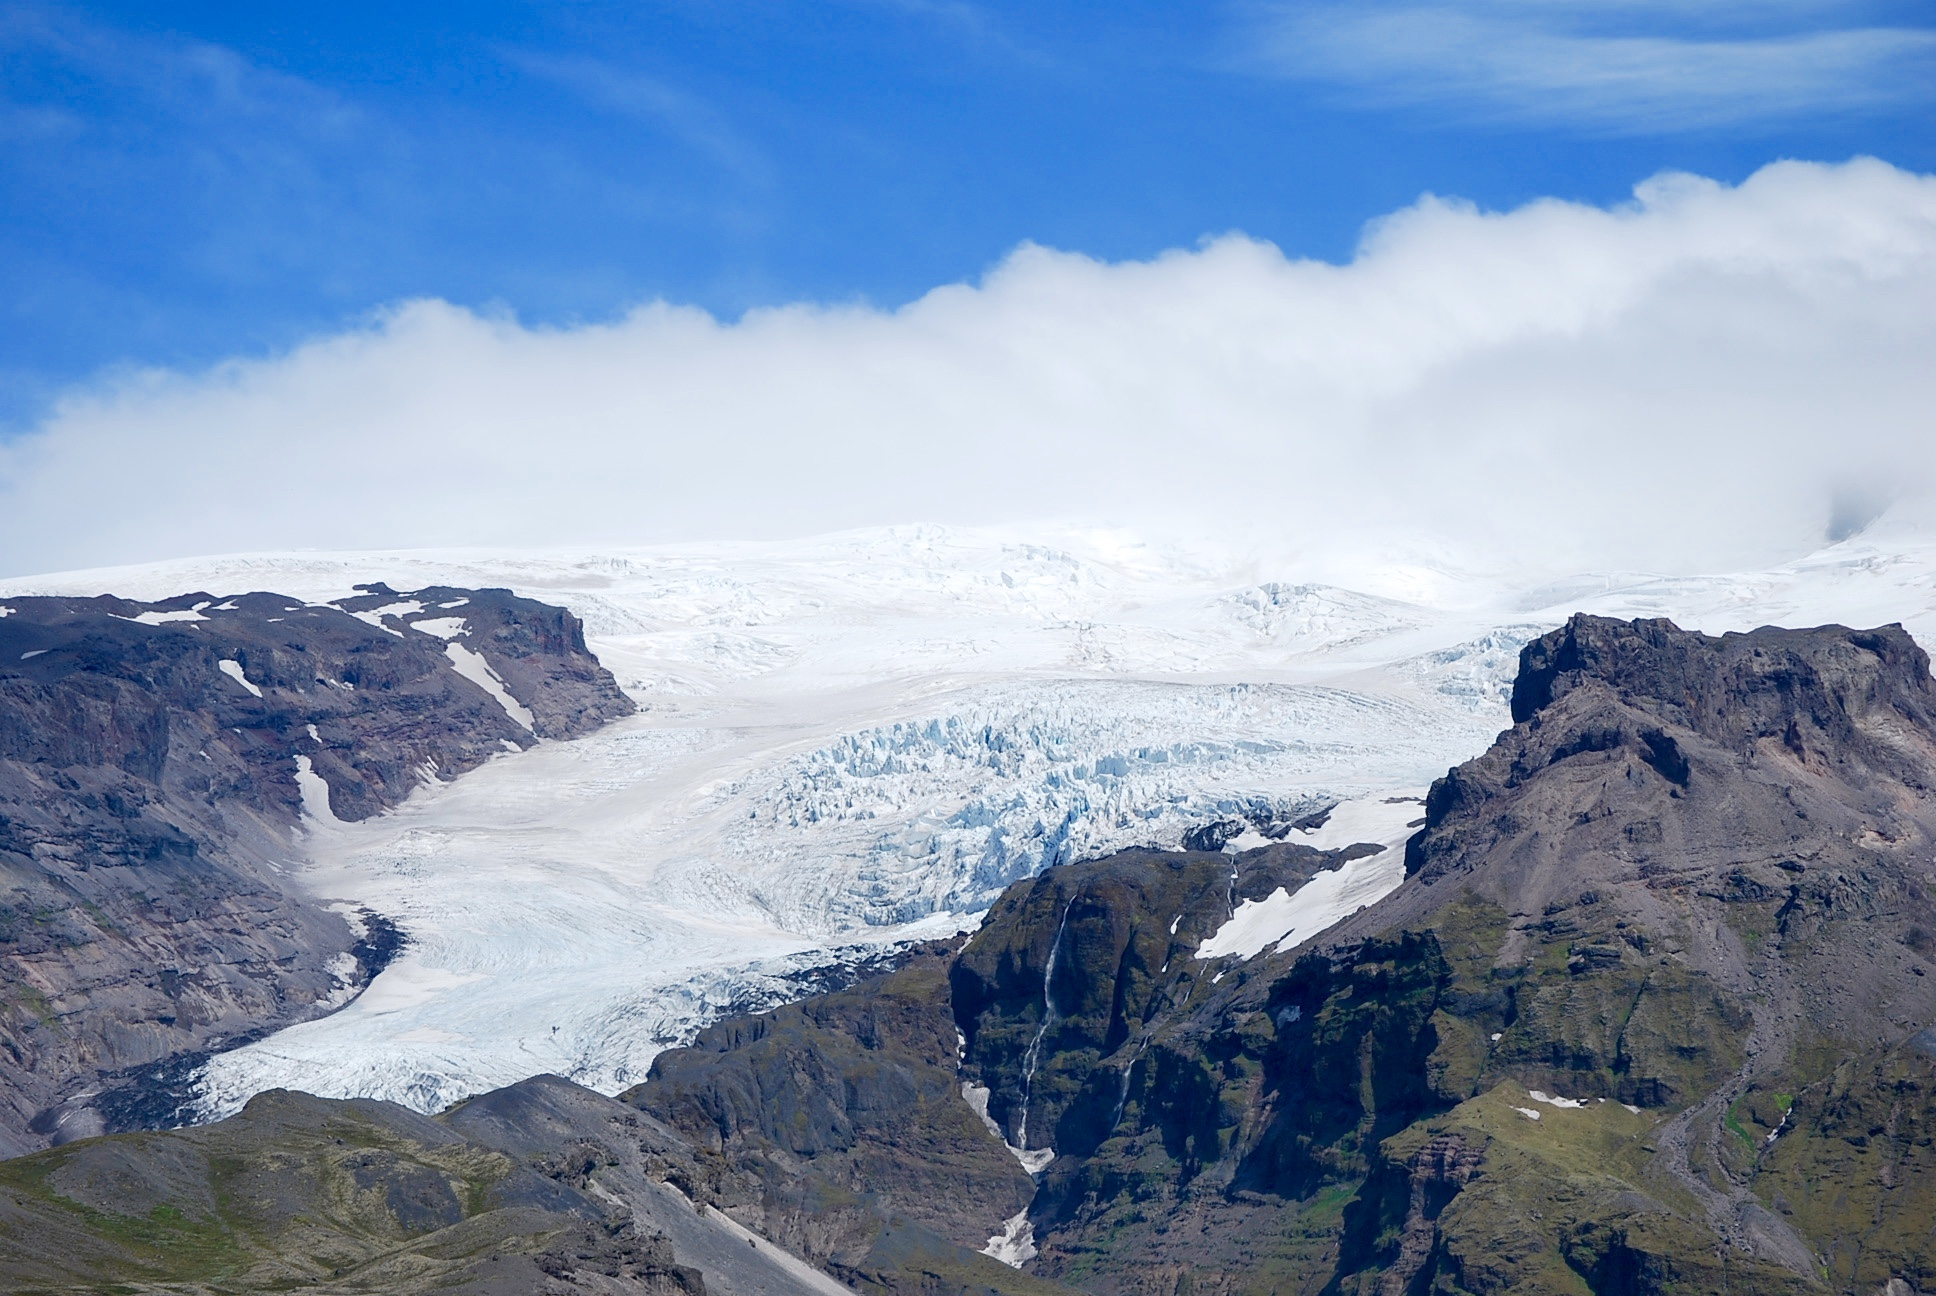 Vatnajökull, the largest glacier in Iceland